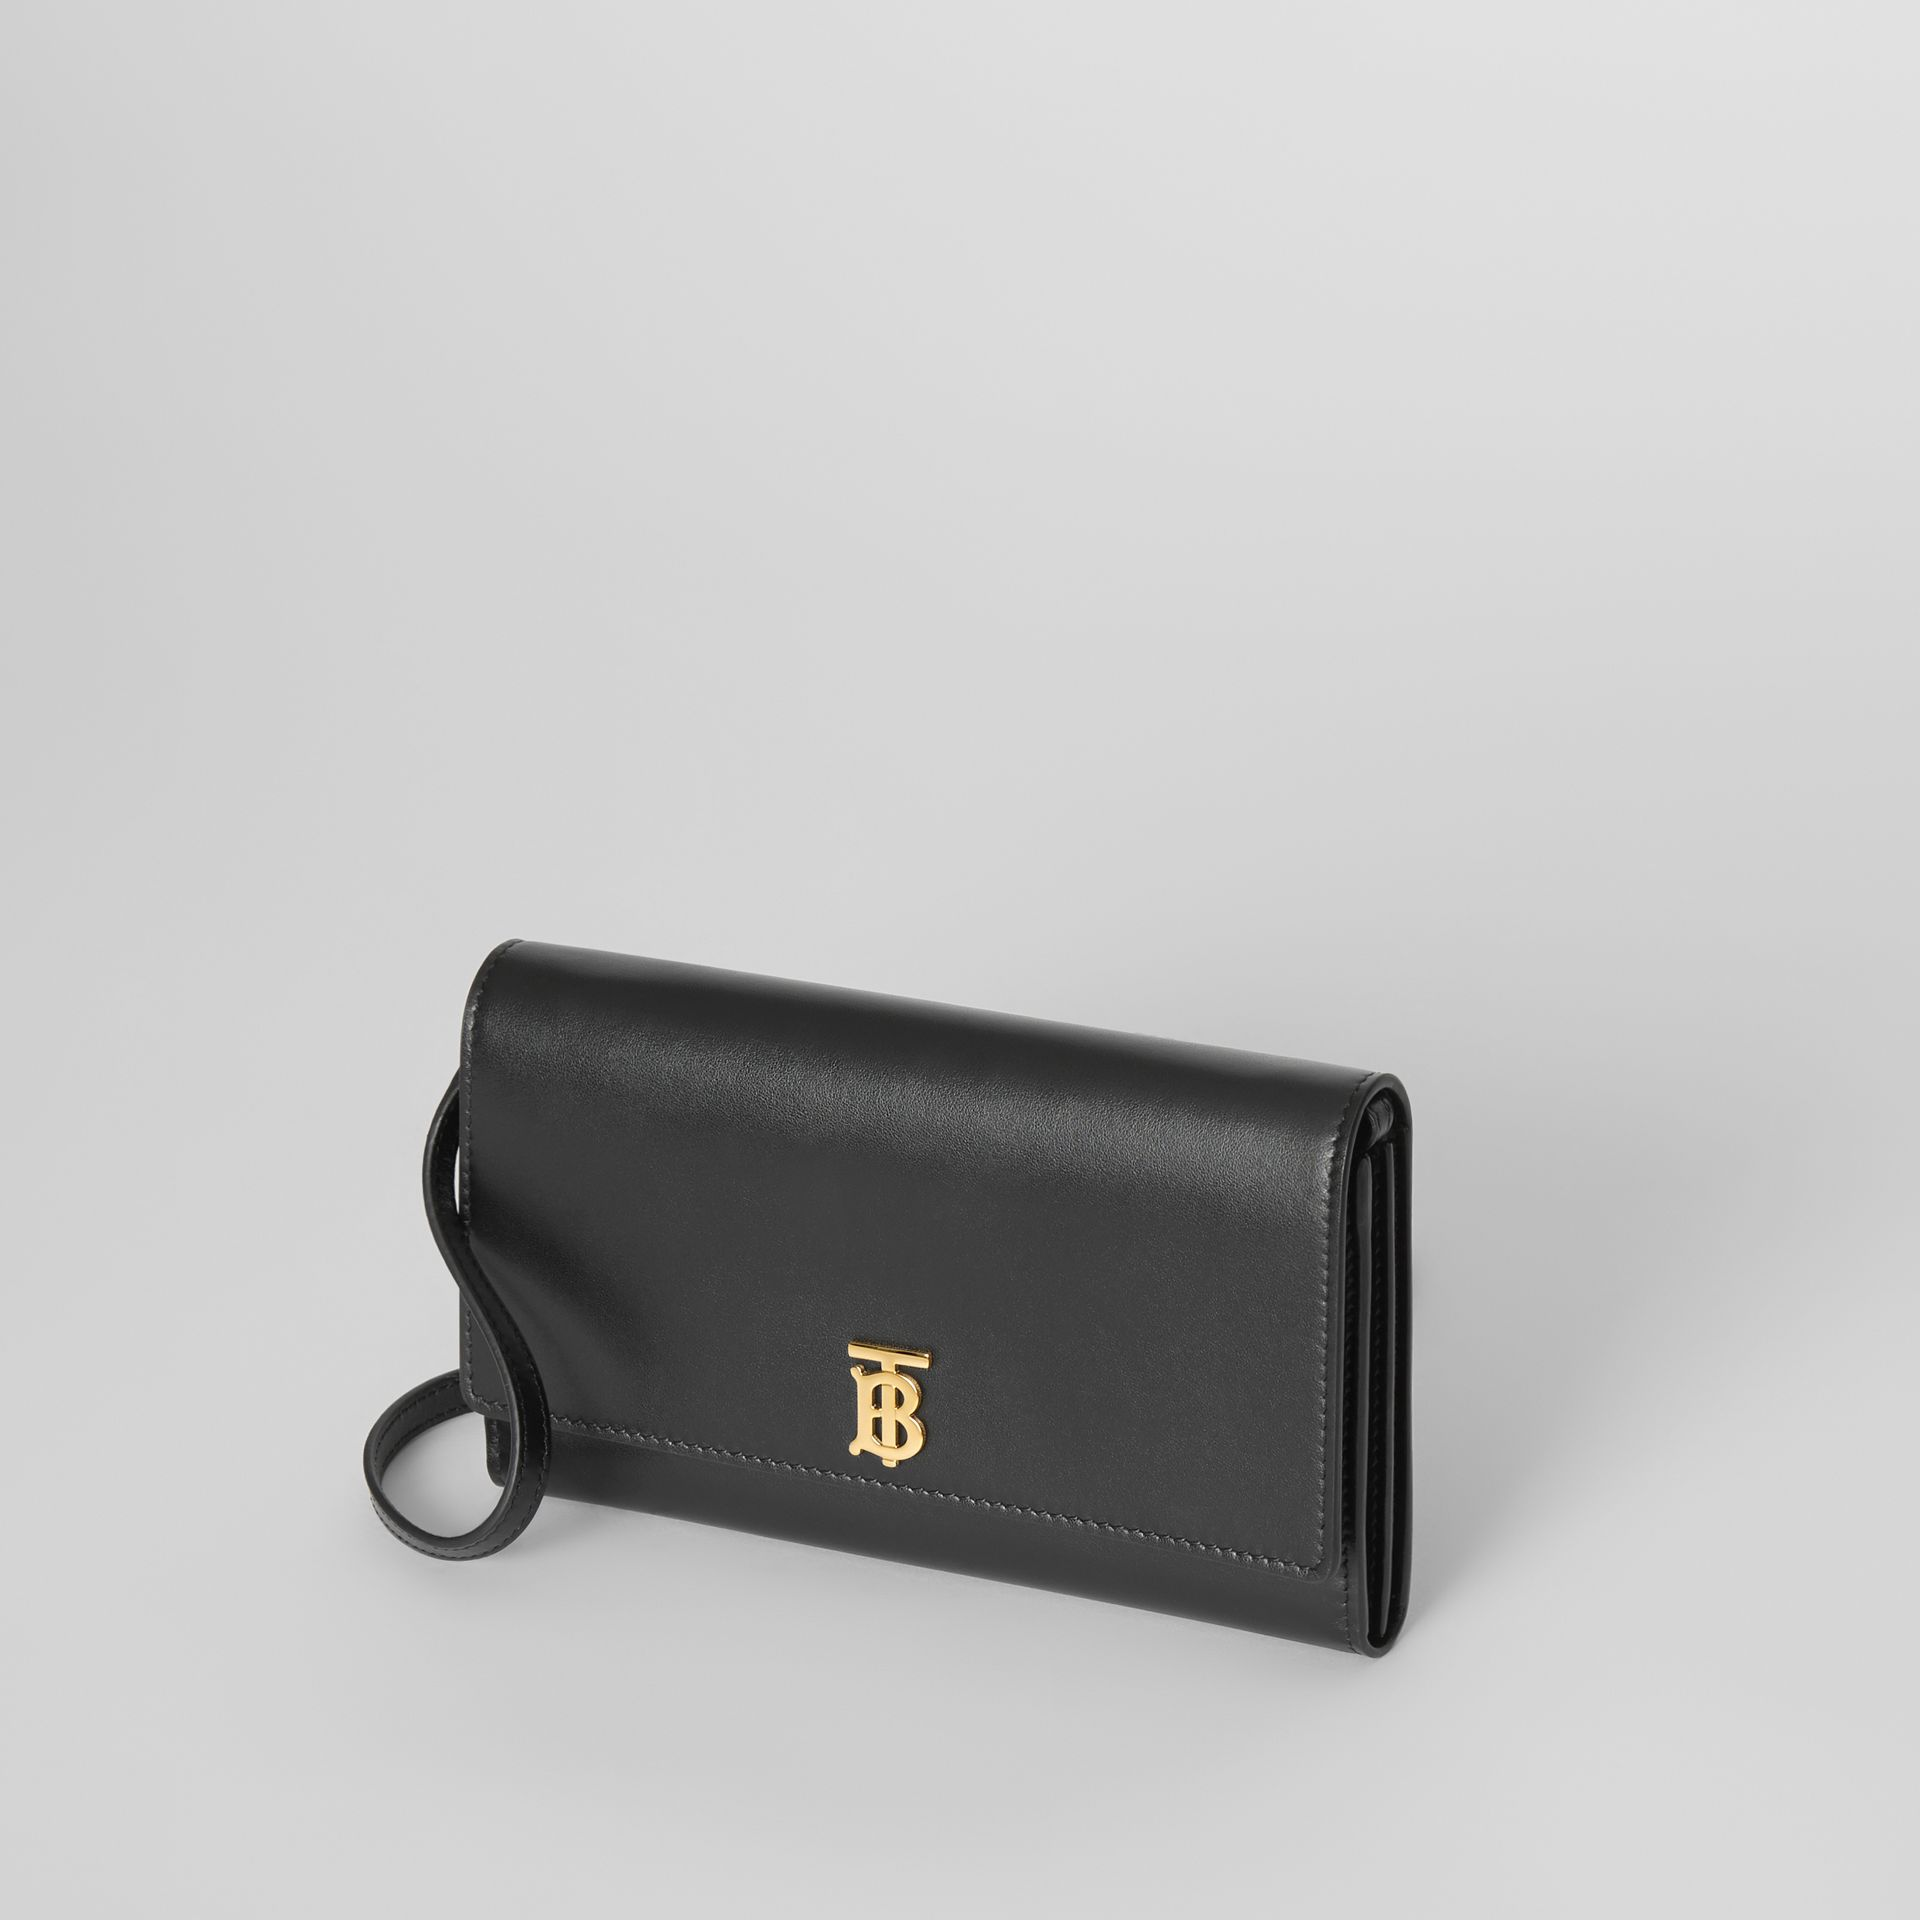 Monogram Motif Leather Wallet with Detachable Strap in Black - Women | Burberry - gallery image 2